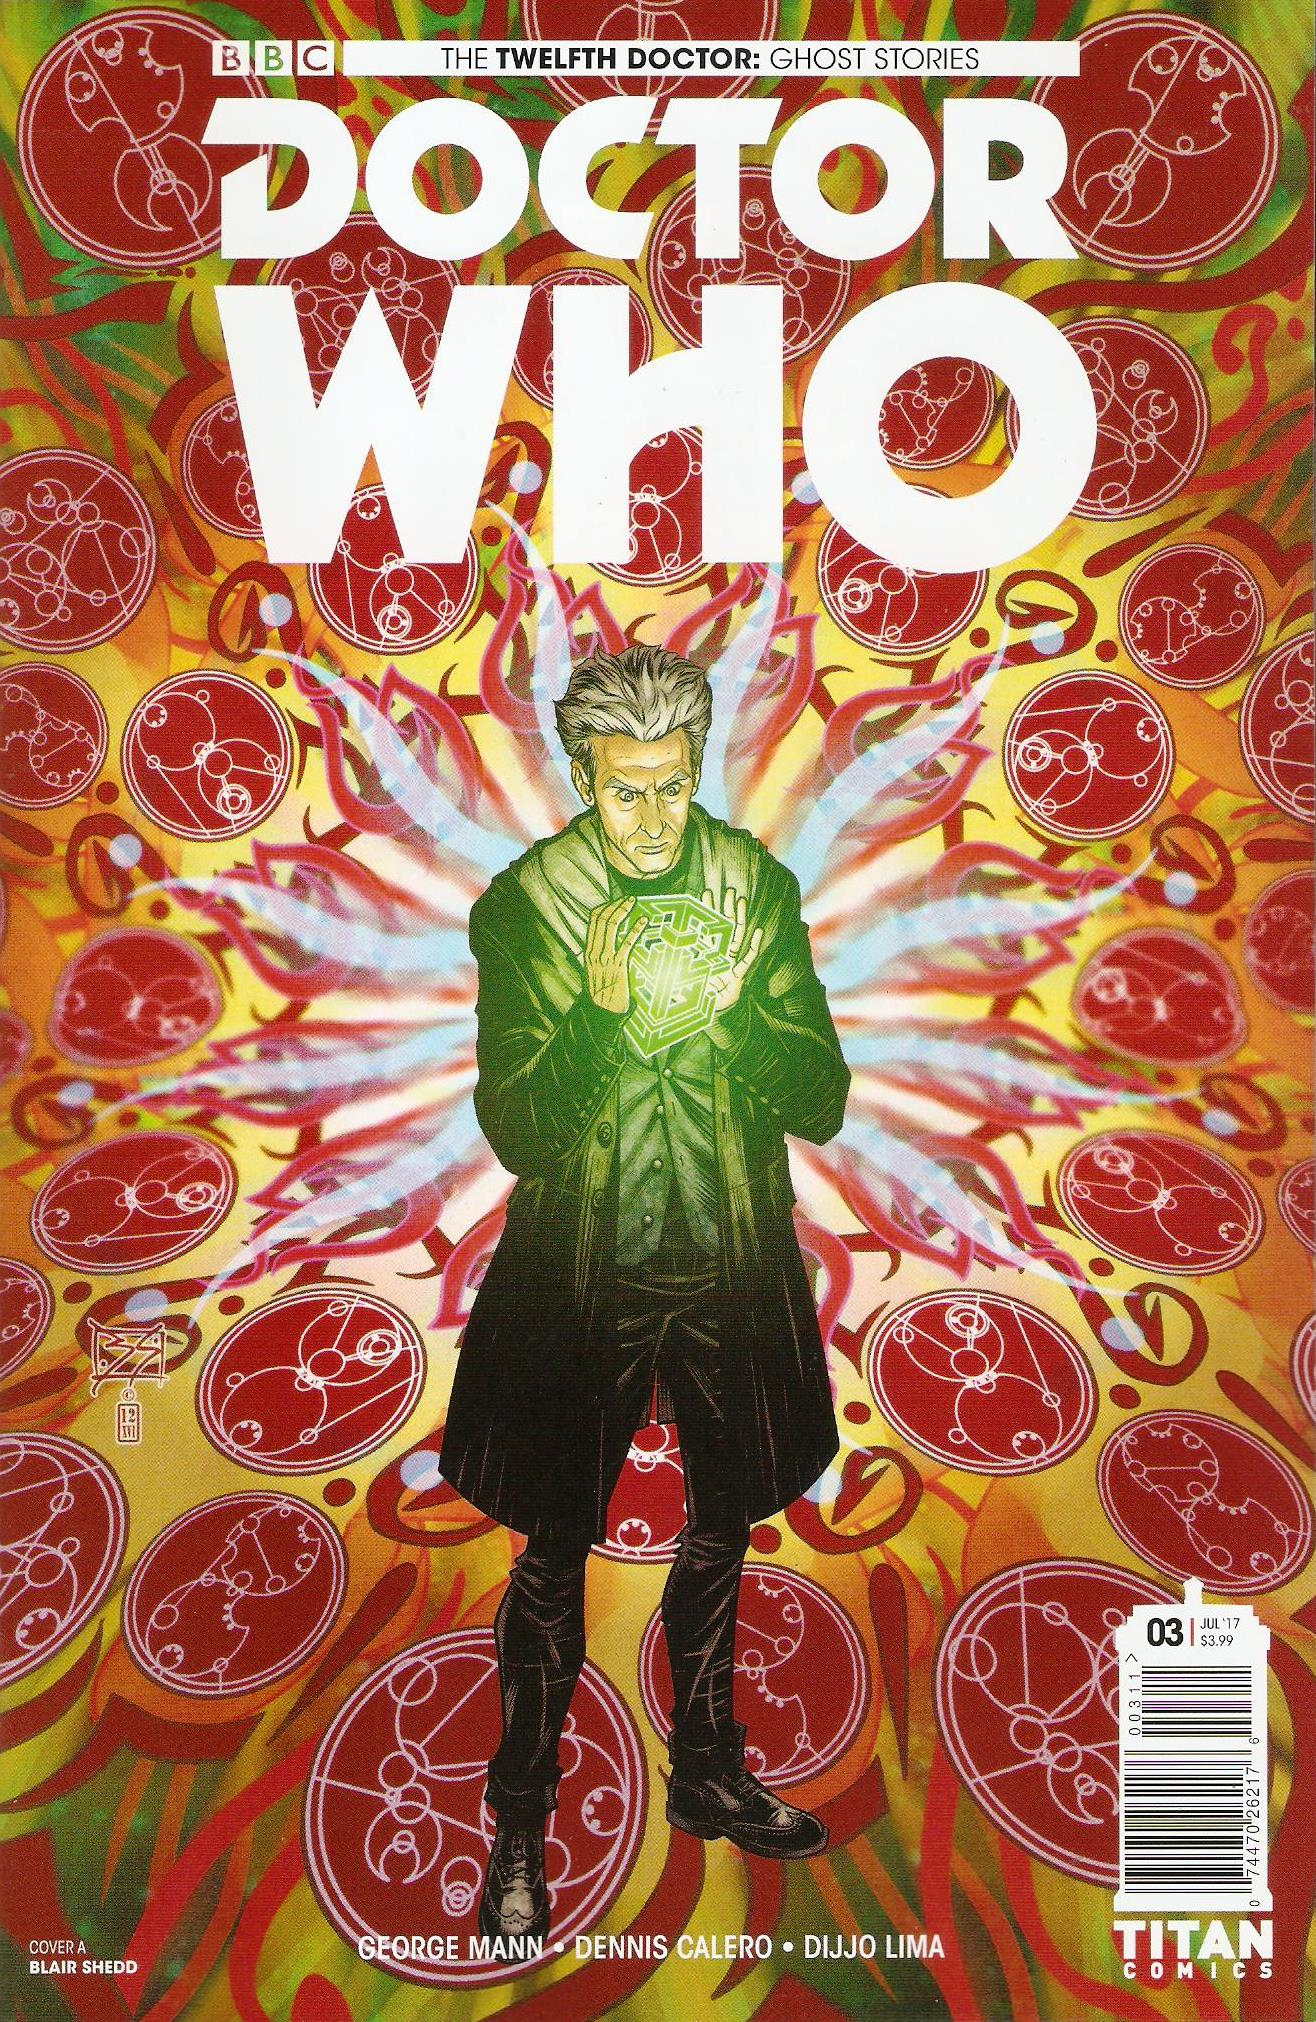 Twelfth doctor ghost stories issue 3a